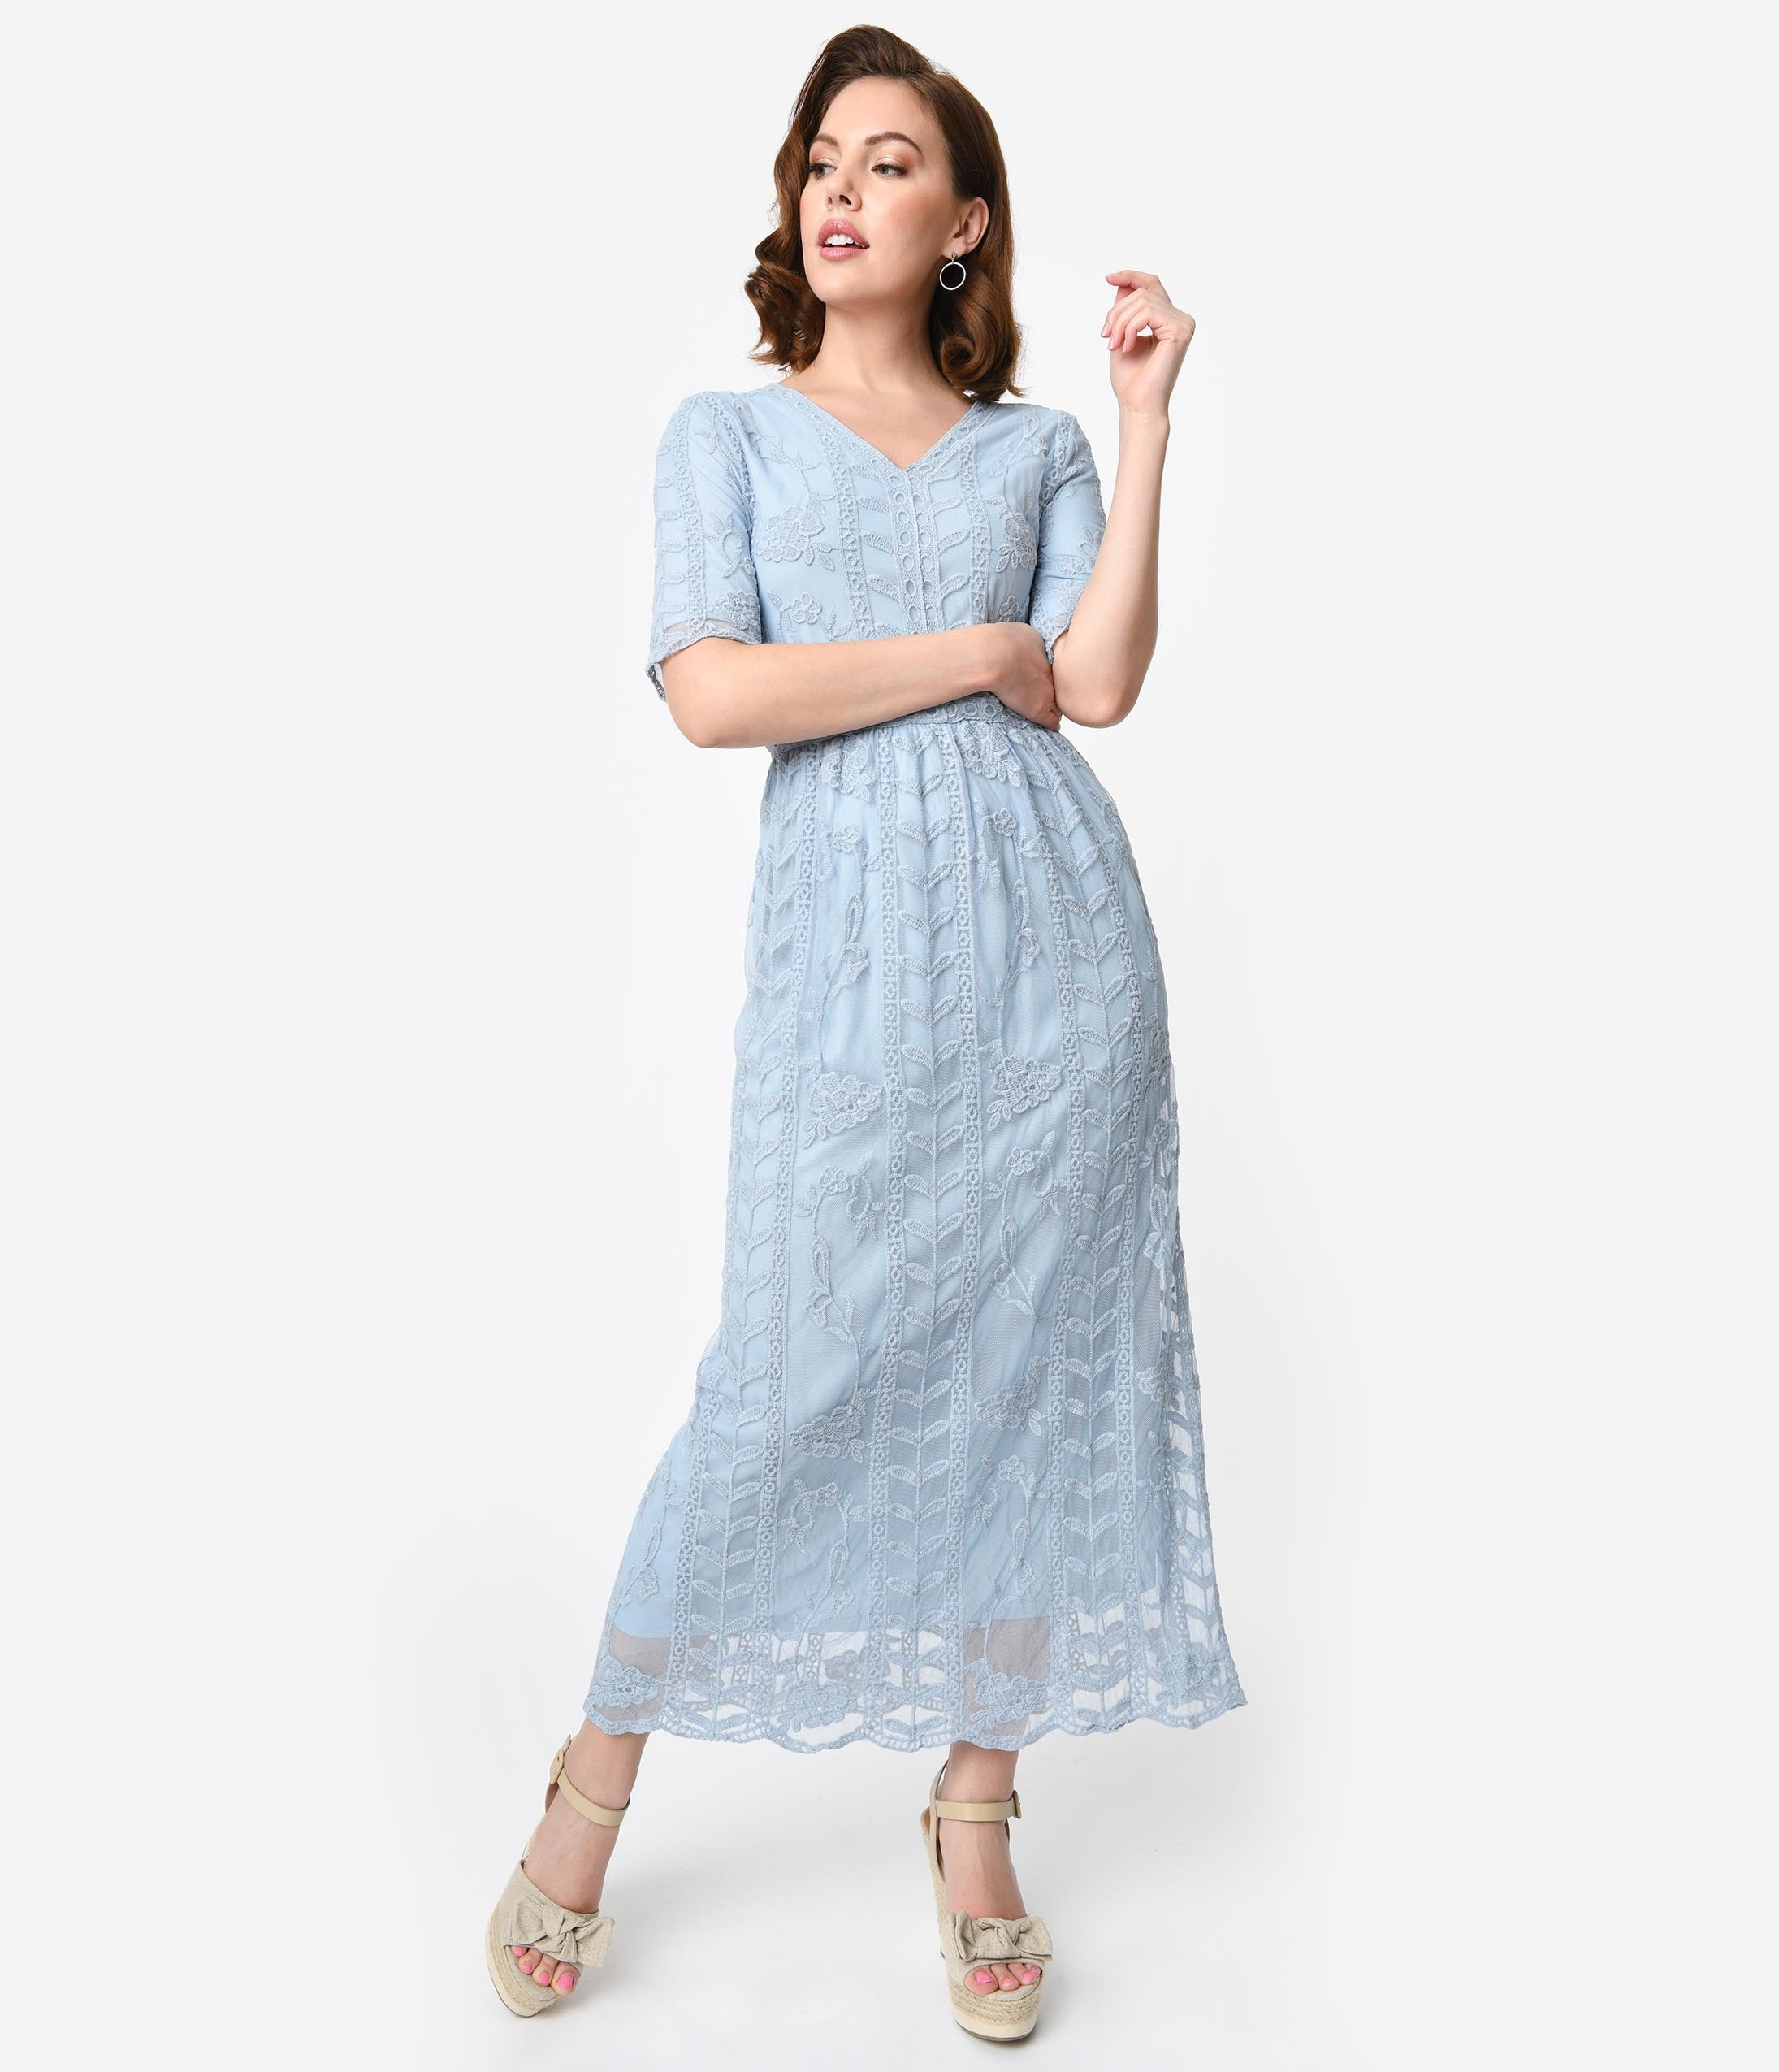 6e64d0d7301 Maxi Dresses   70s-Style Long Dresses – Unique Vintage